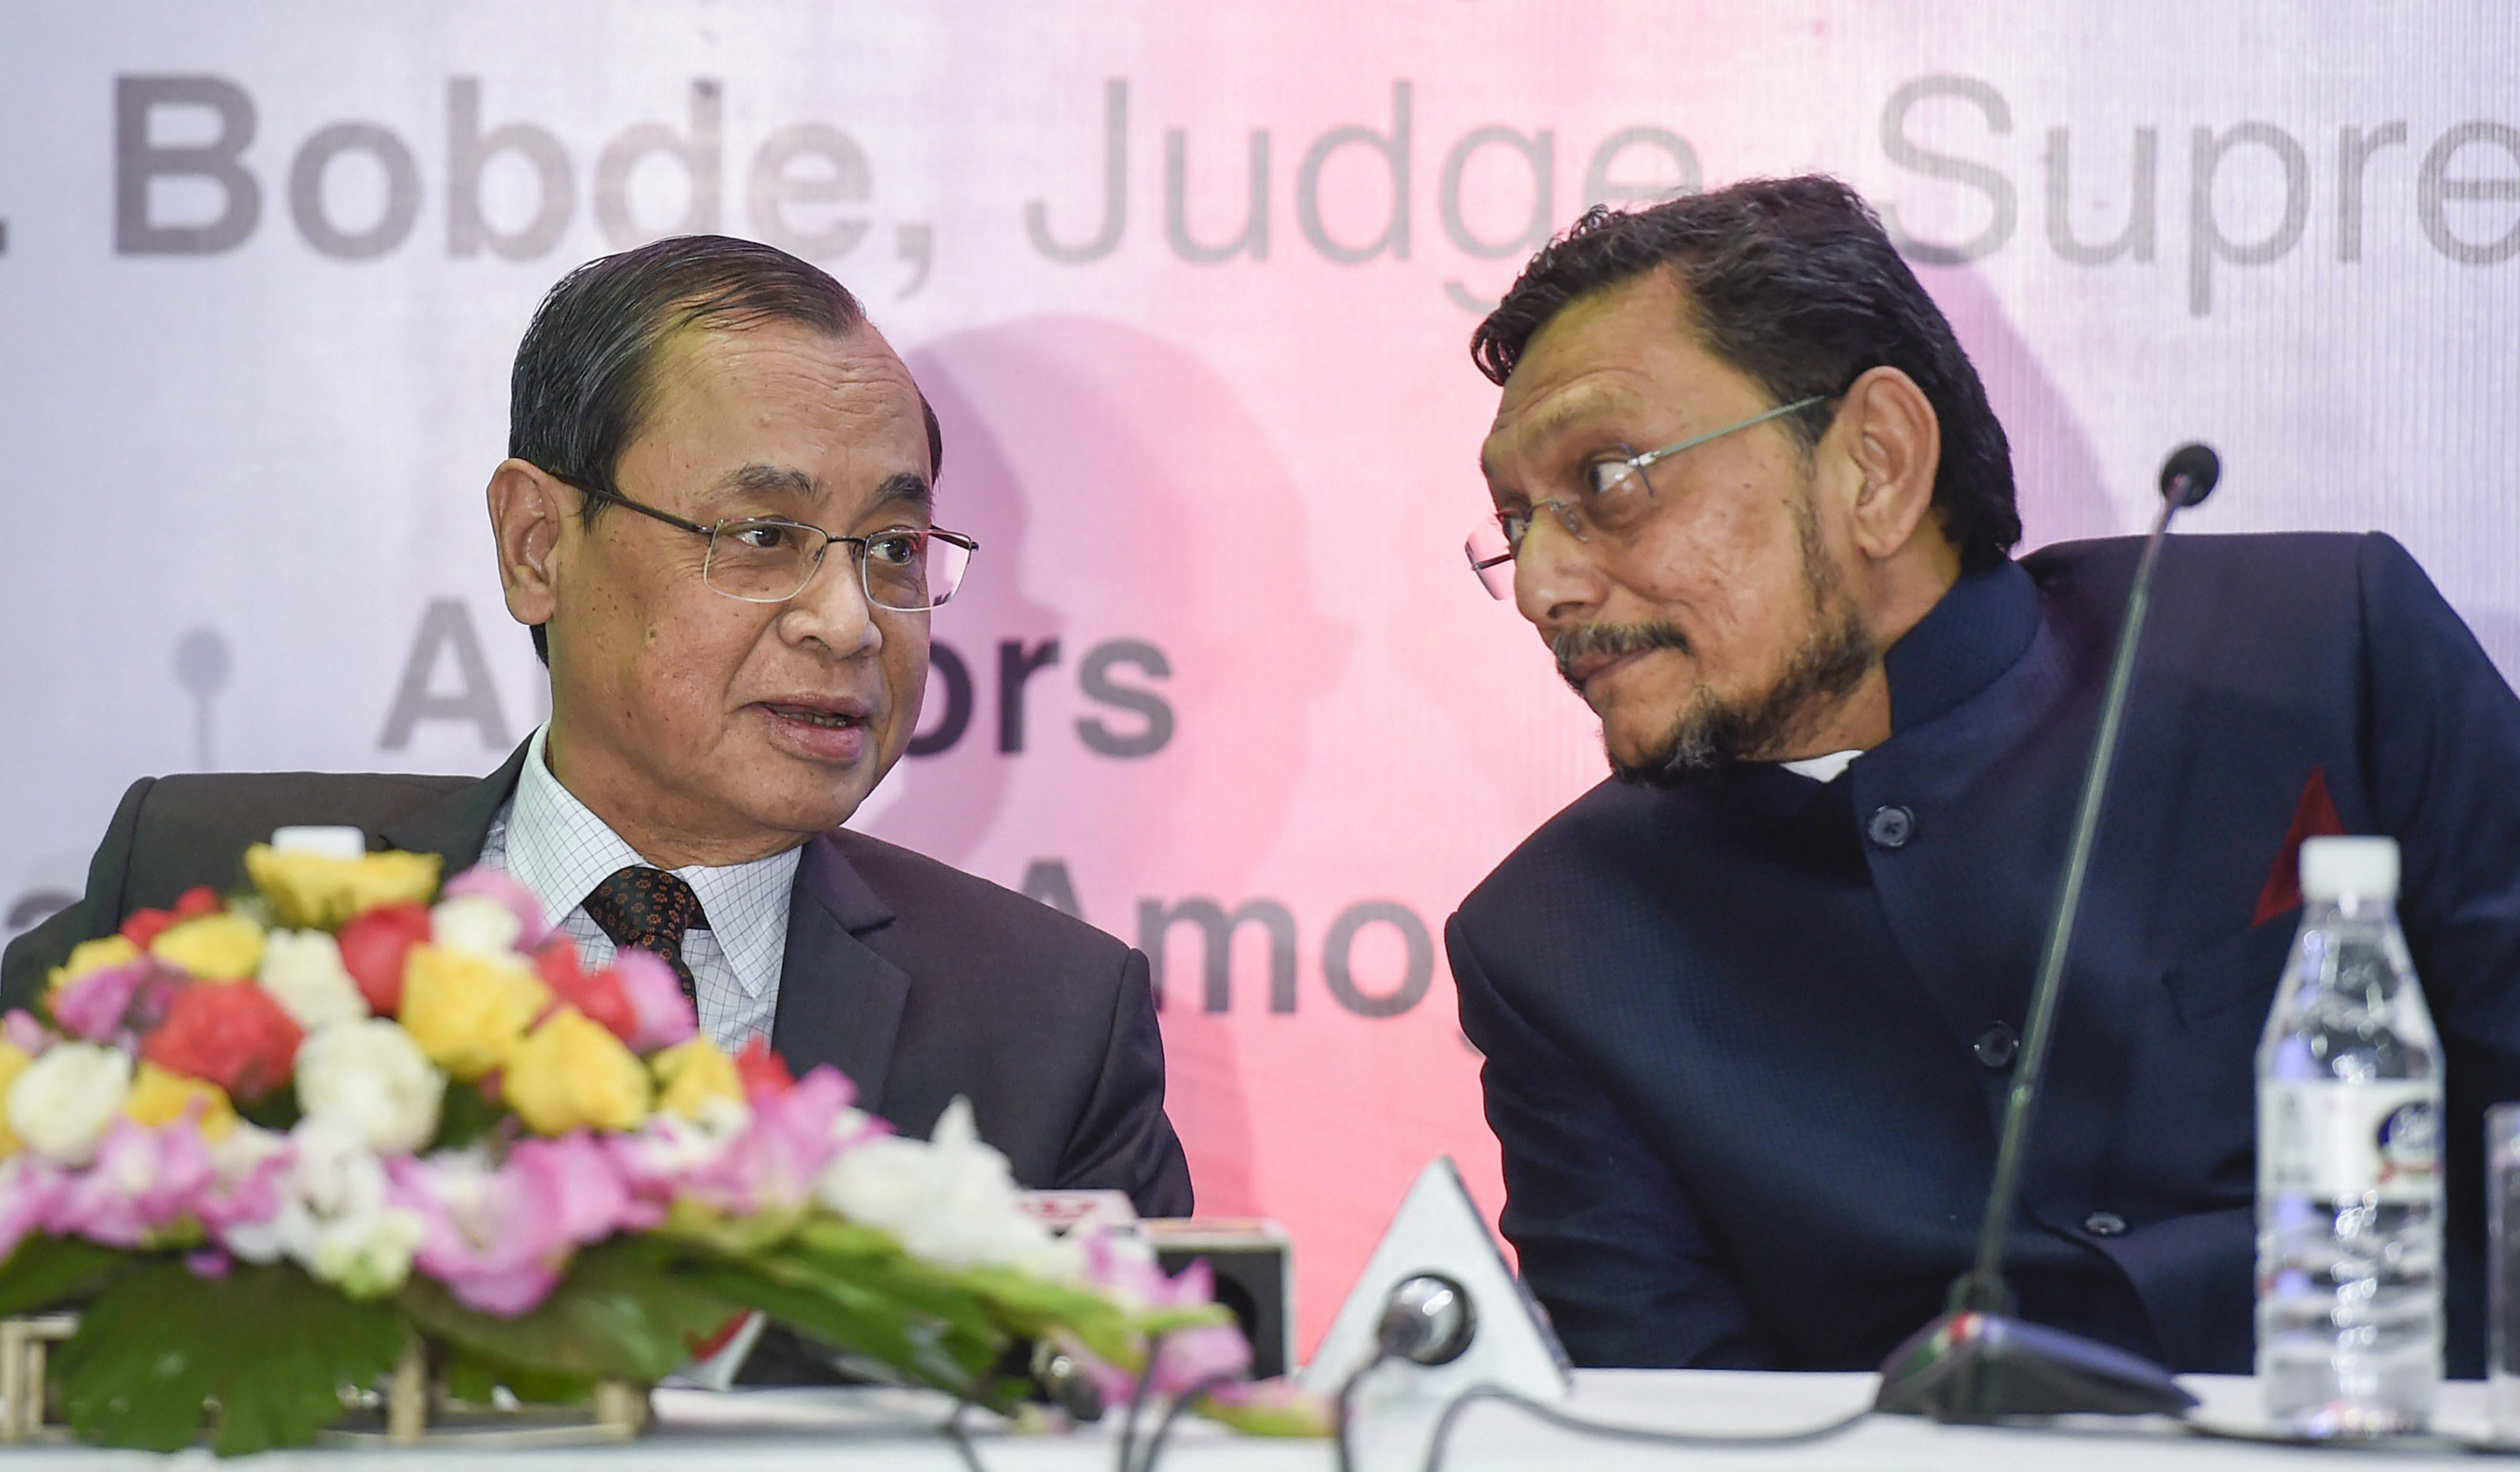 In this Friday, November 30, 2018, file photo, Chief Justice of India Ranjan Gogoi (left) speaks with Justice S. A. Bobde (right) in New Delhi